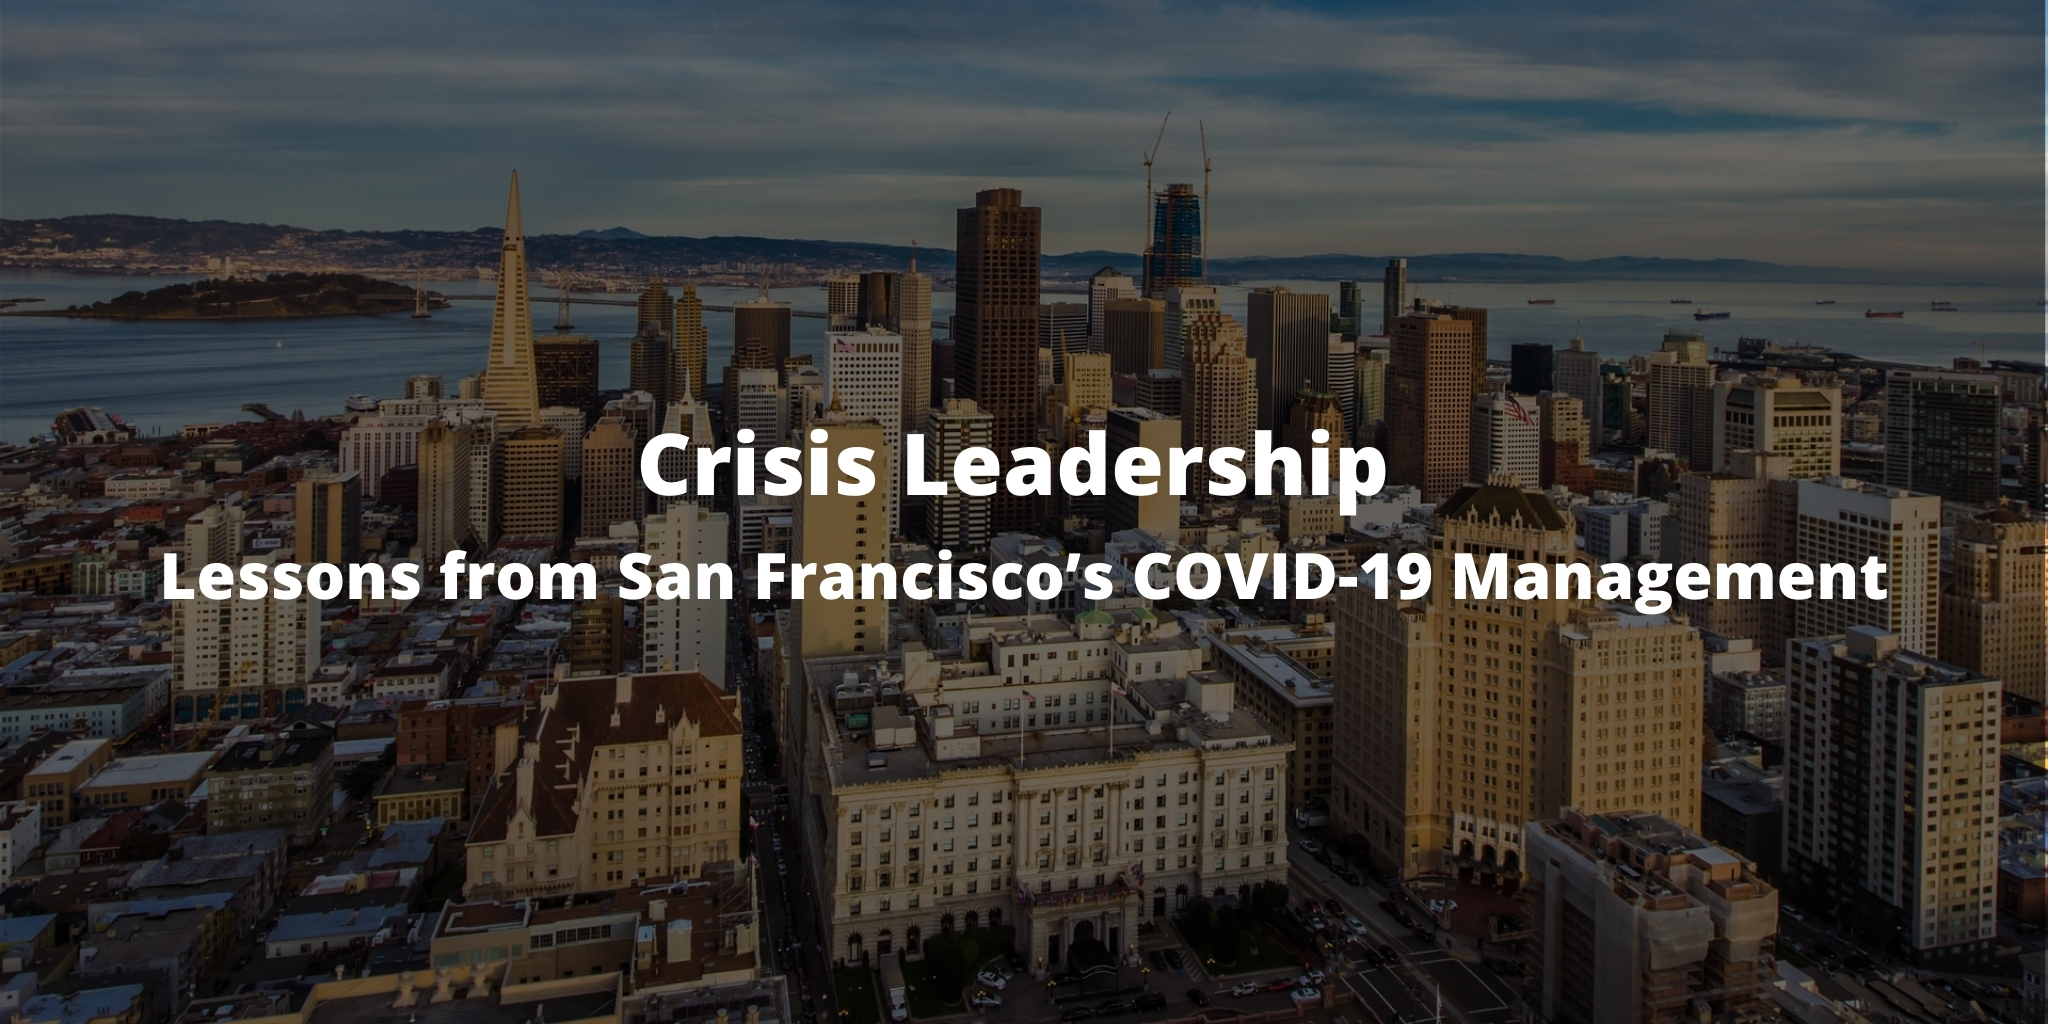 Crisis Leadership - Lessons from San Francisco's COVID-19 Management